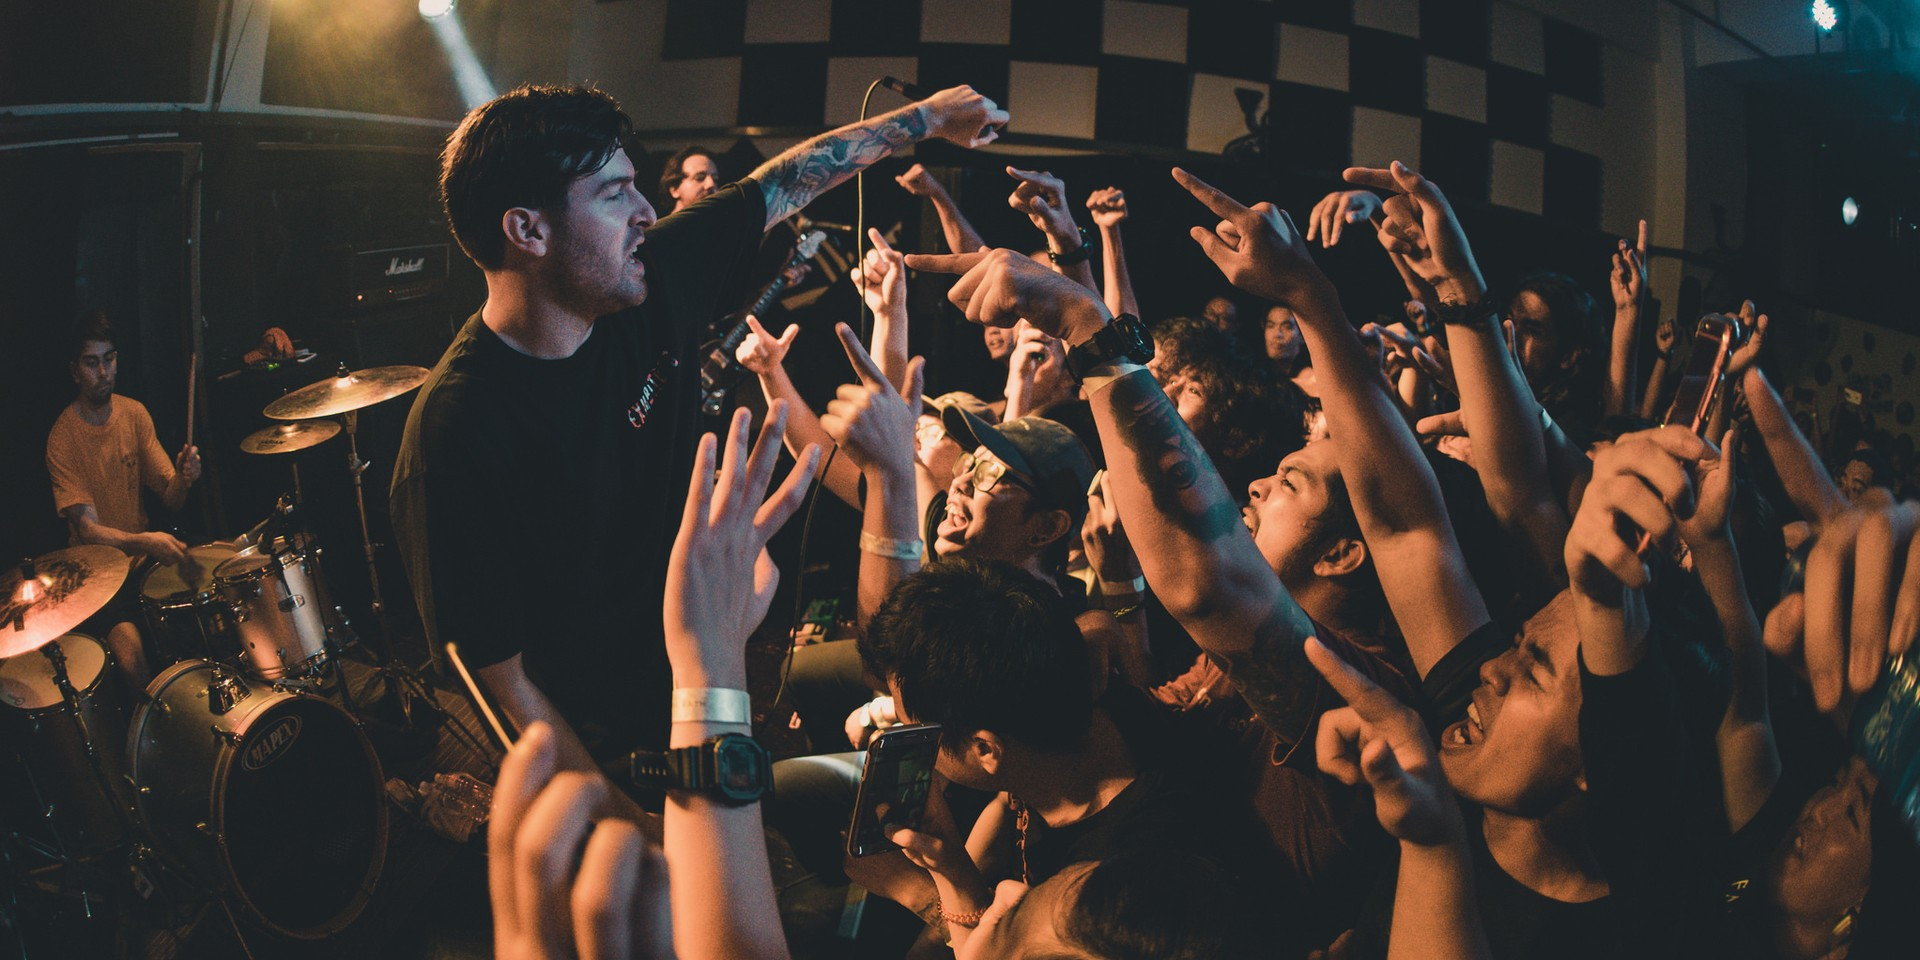 A jubilant night of hardcore with Counterparts and Stray From The Path - gig report